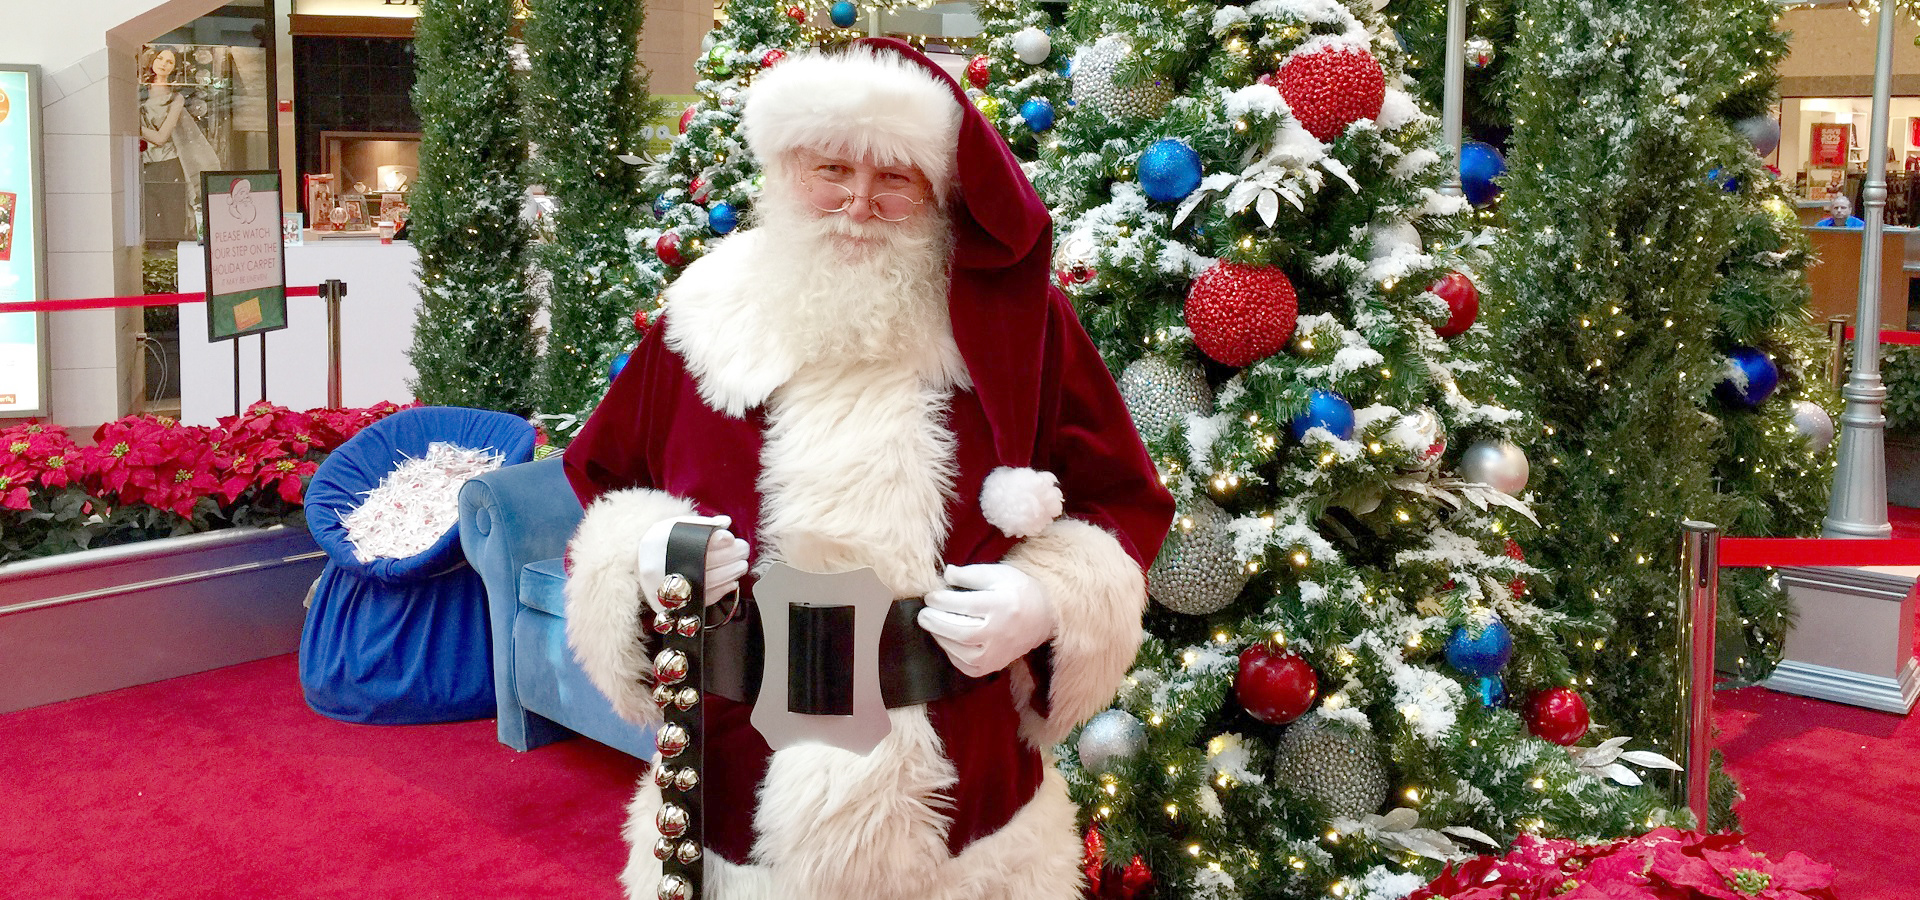 2nd Annual Tree Lighting at Dulles Town Center! & 2nd Annual Tree Lighting at Dulles Town Center! | Events | Dulles ...